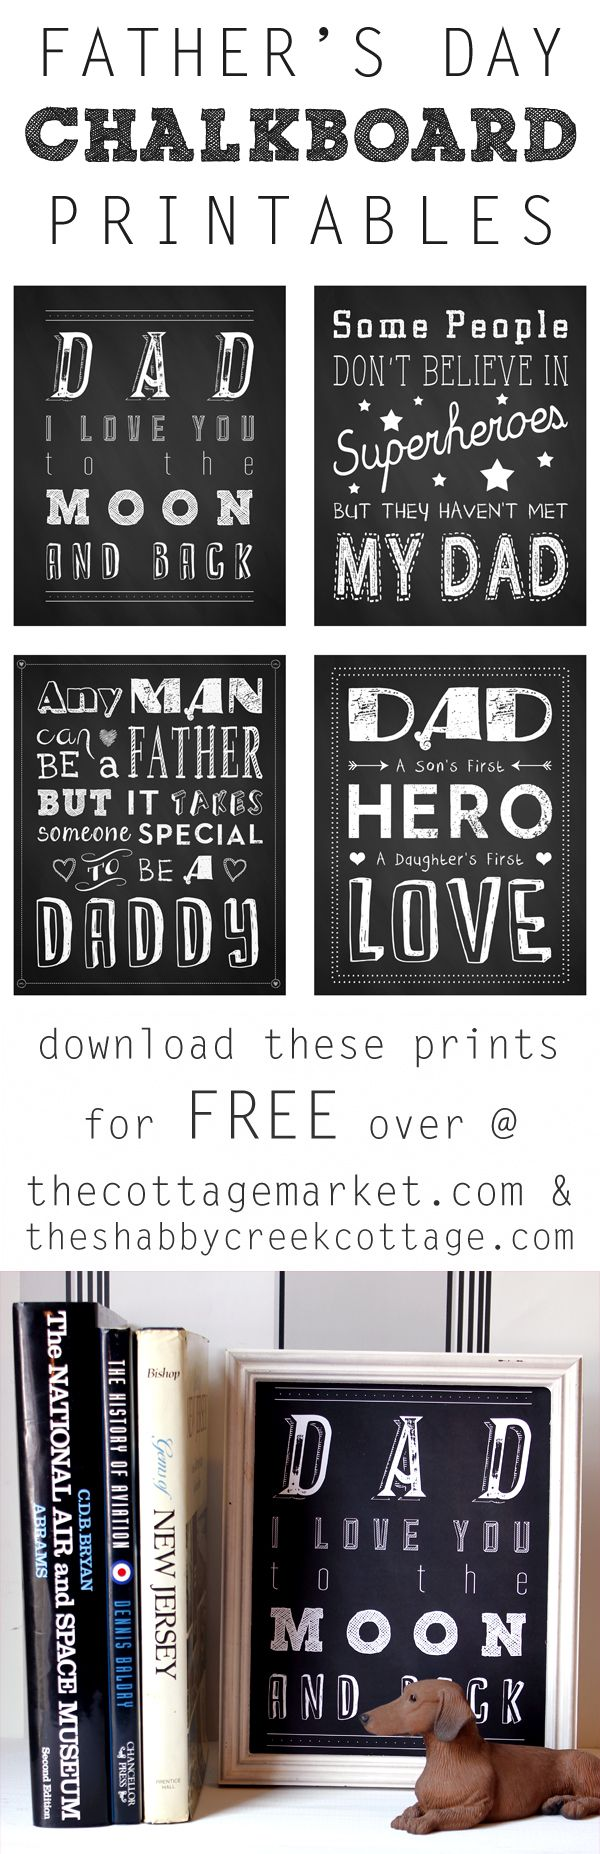 Father's Day Chalkboard Printables